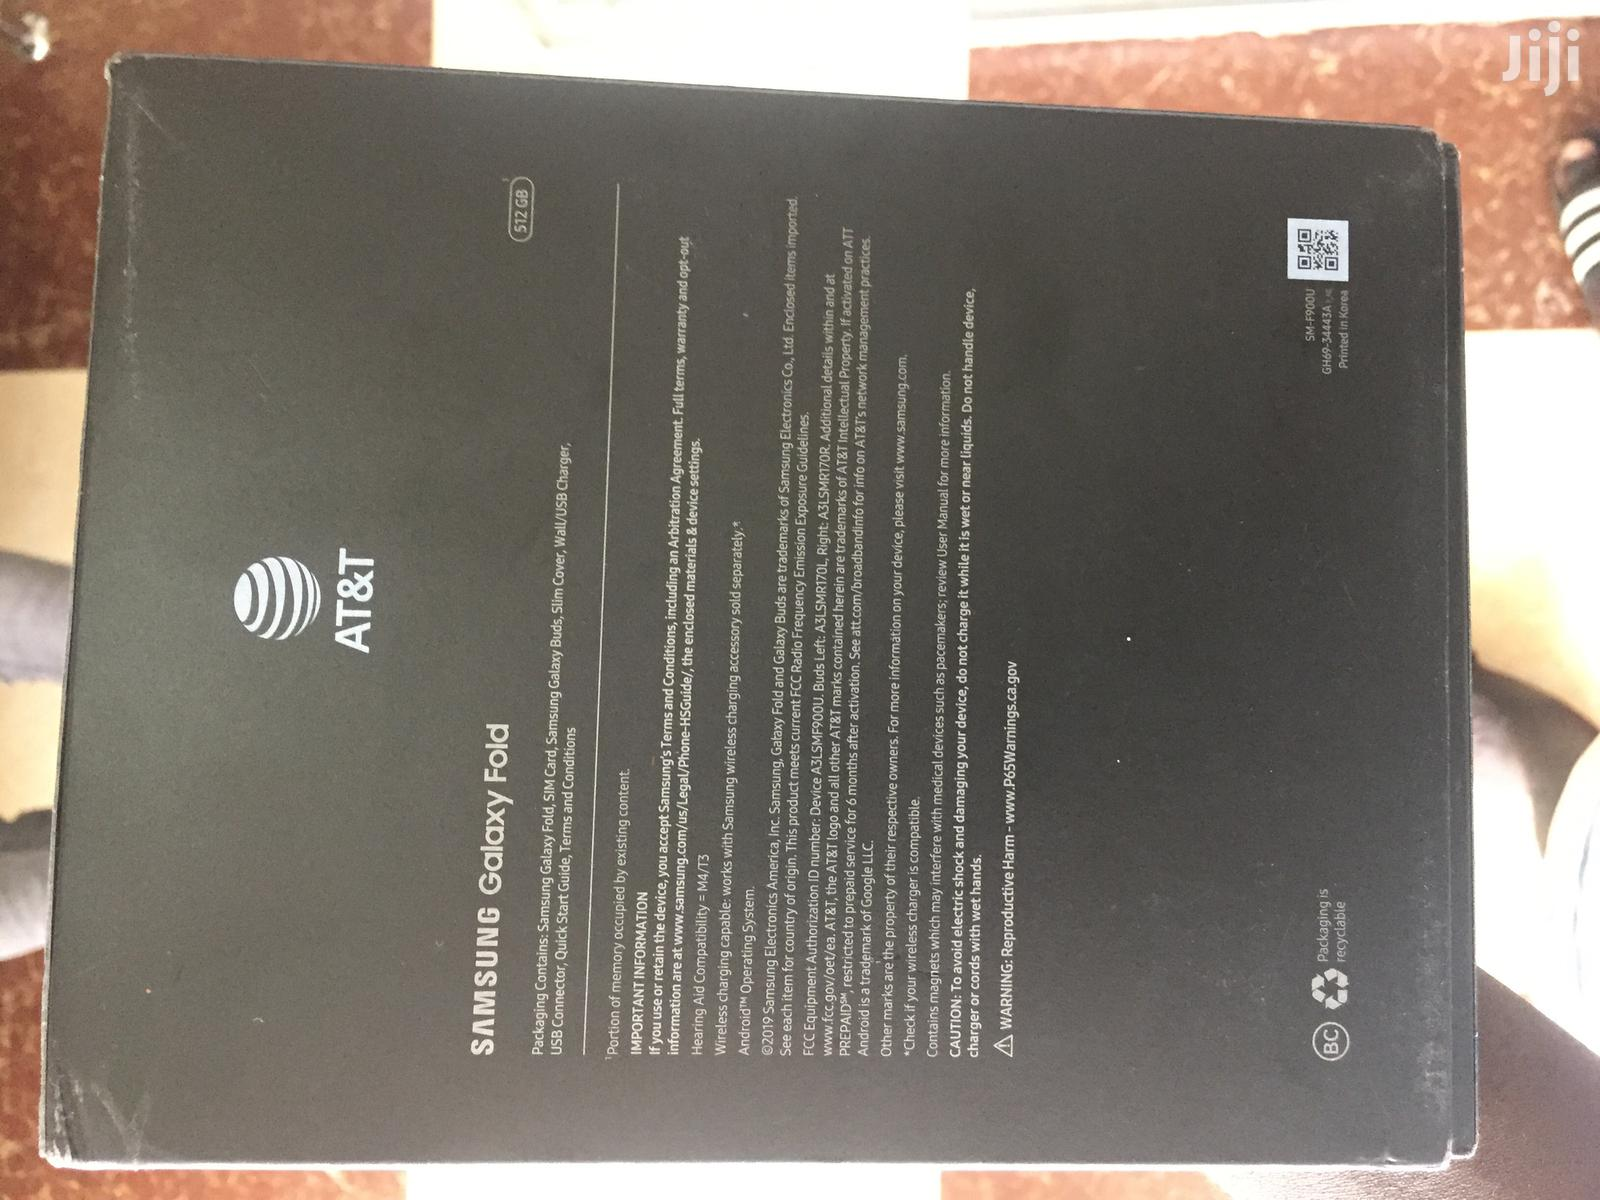 New Samsung Galaxy Fold 512GB Black | Mobile Phones for sale in Kokomlemle, Greater Accra, Ghana